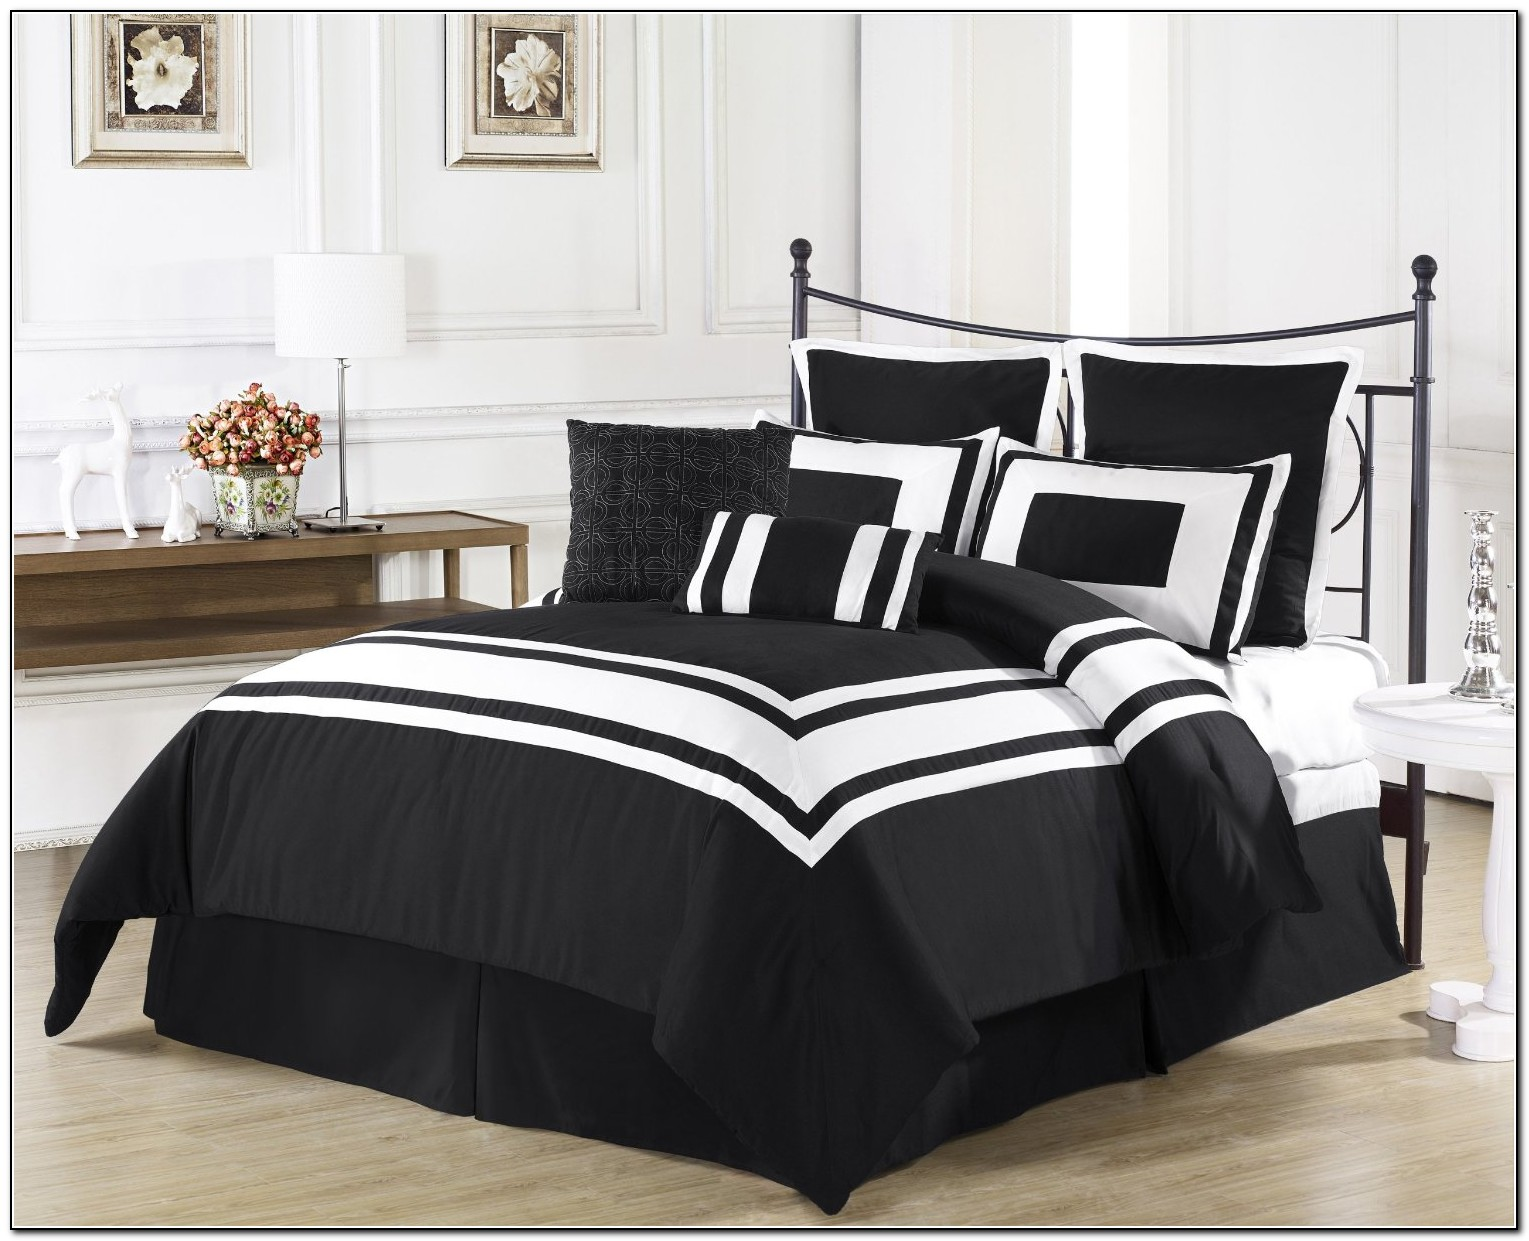 black and white bedding sets download page home design ideas galleries home design ideas guide. Black Bedroom Furniture Sets. Home Design Ideas